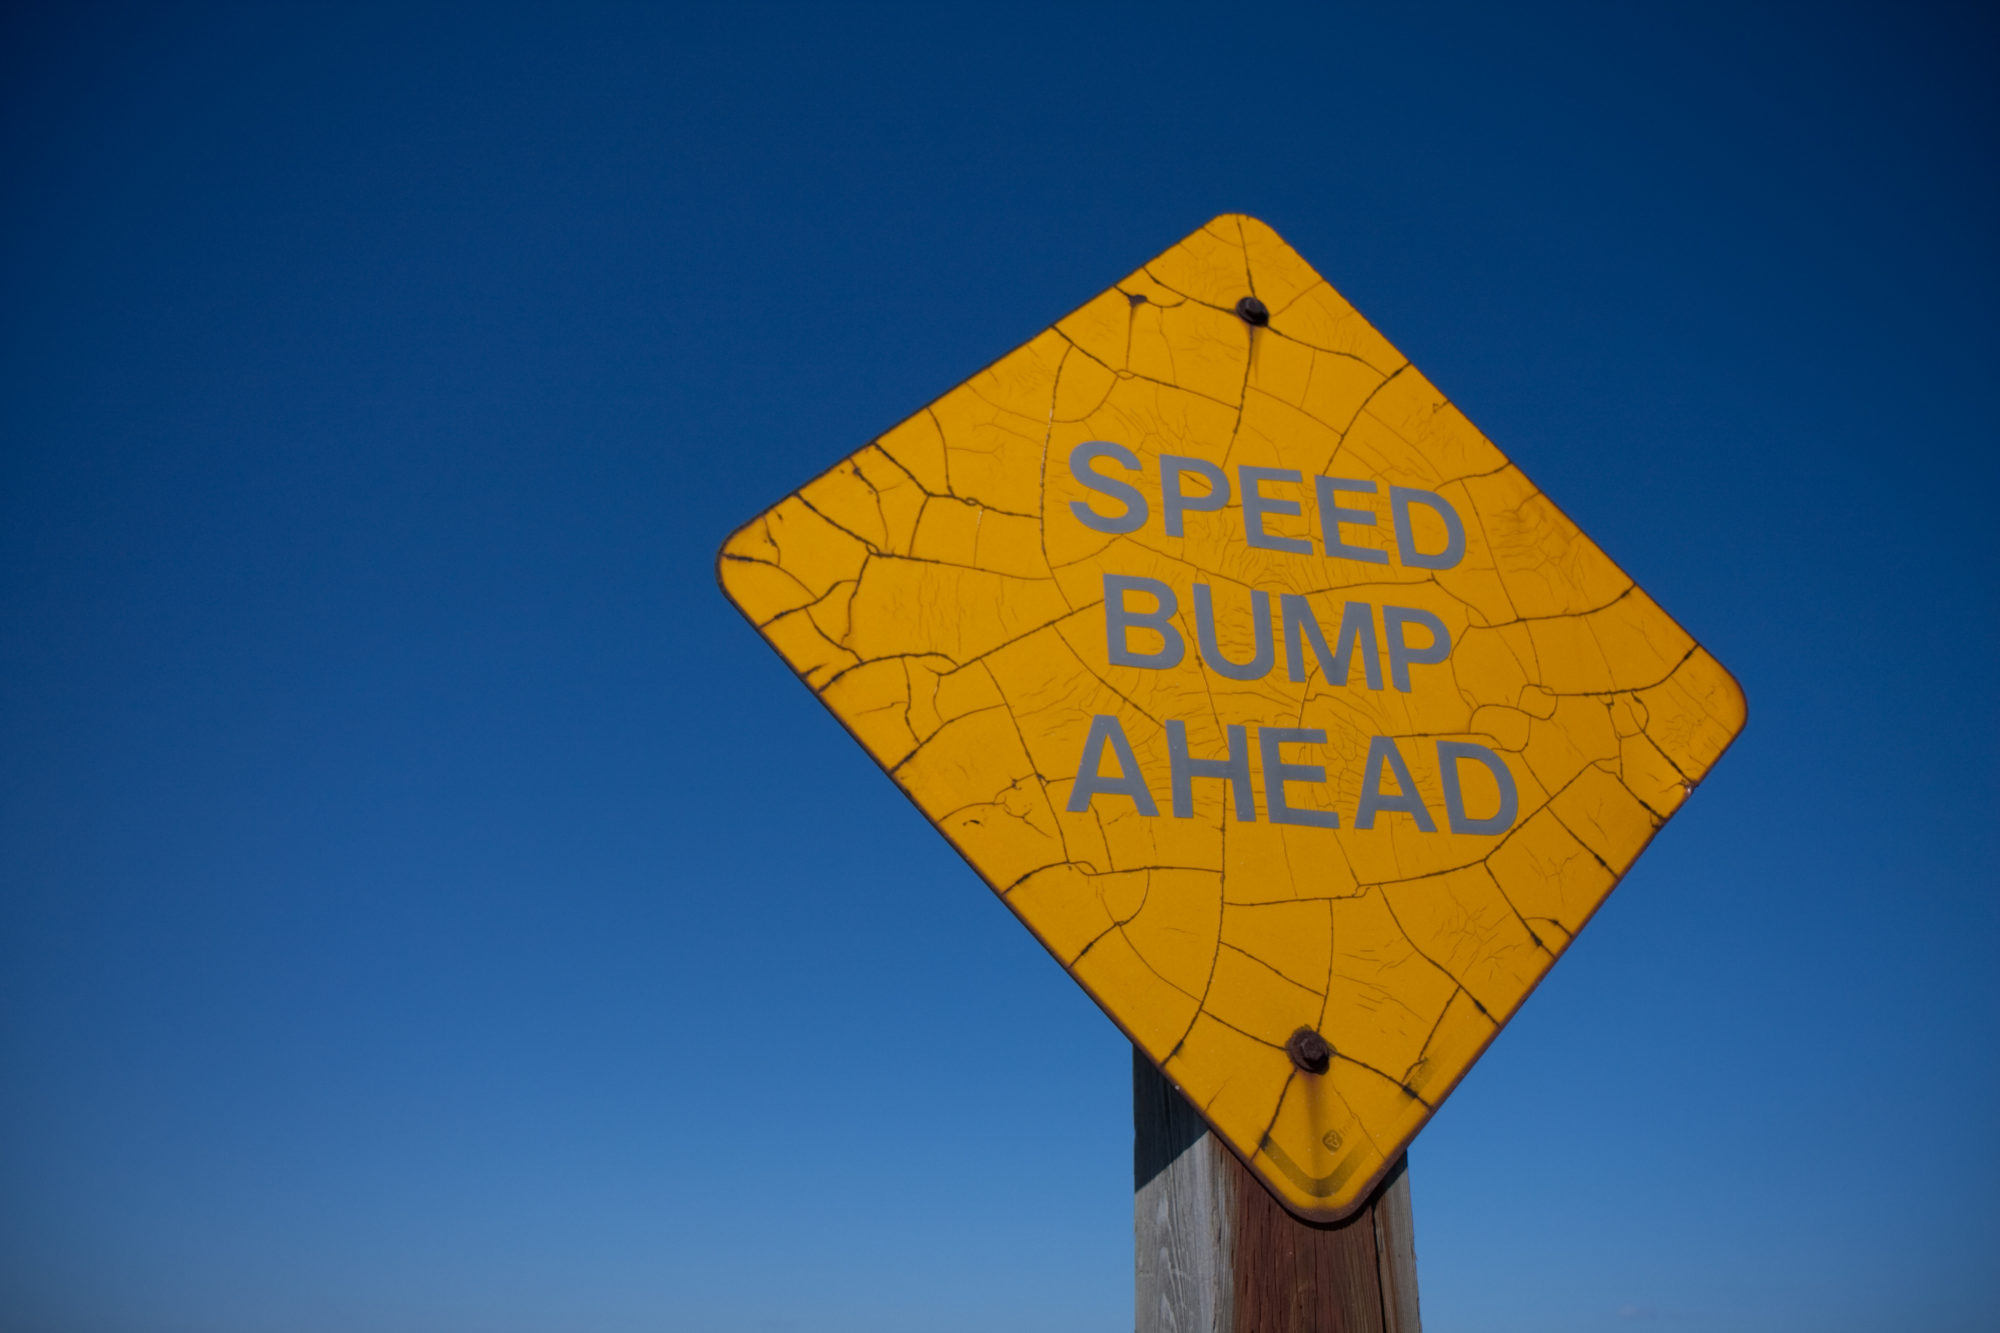 Sign for speed bumps ahead